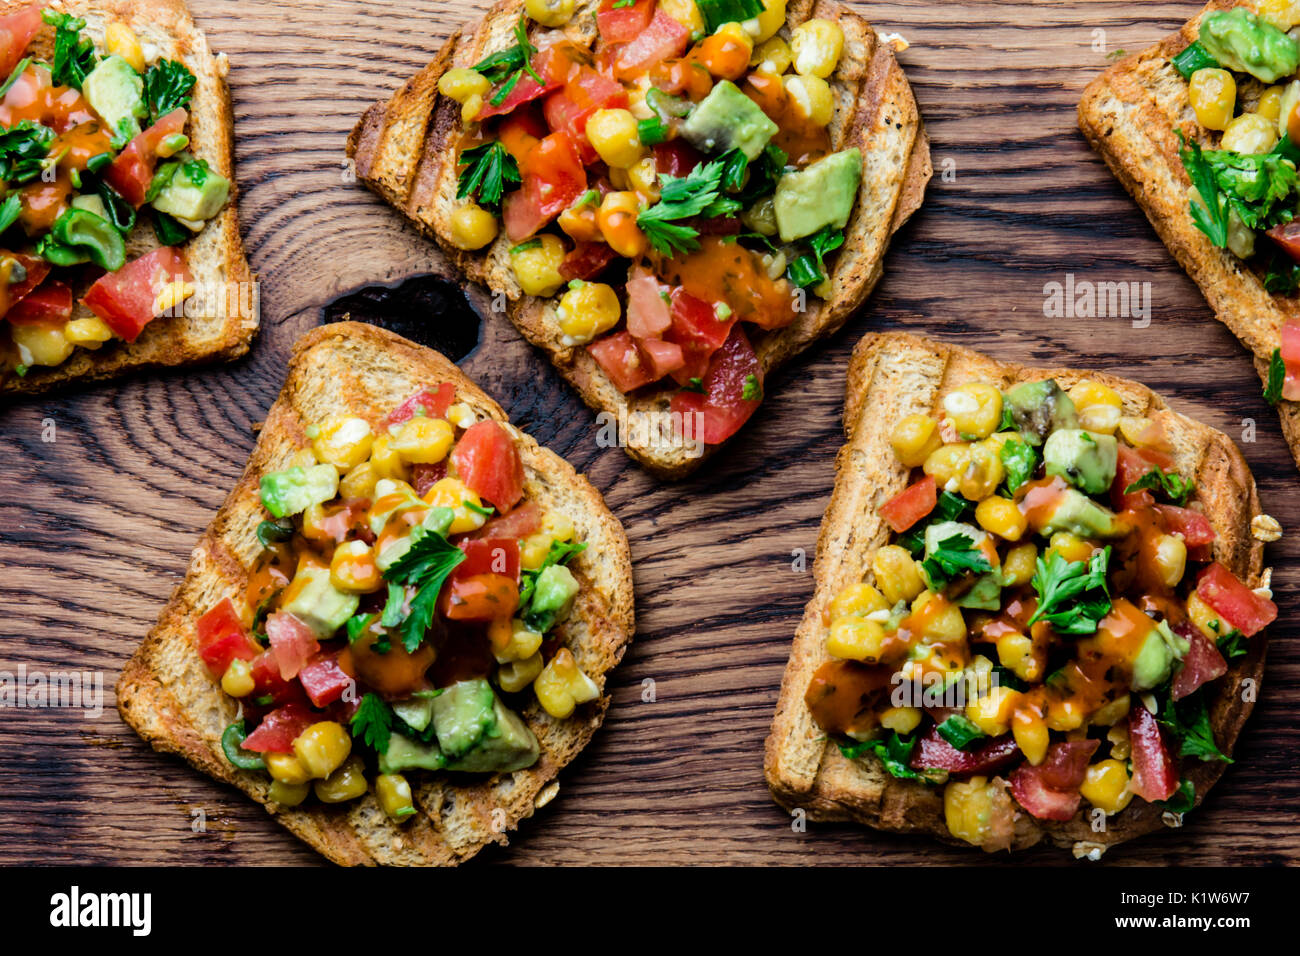 Mexican latin american style open sandwiches vegetarian toasts with mexican latin american style open sandwiches vegetarian toasts with maize avocado tomatoes on wooden board rustic wooden blue background top view forumfinder Gallery